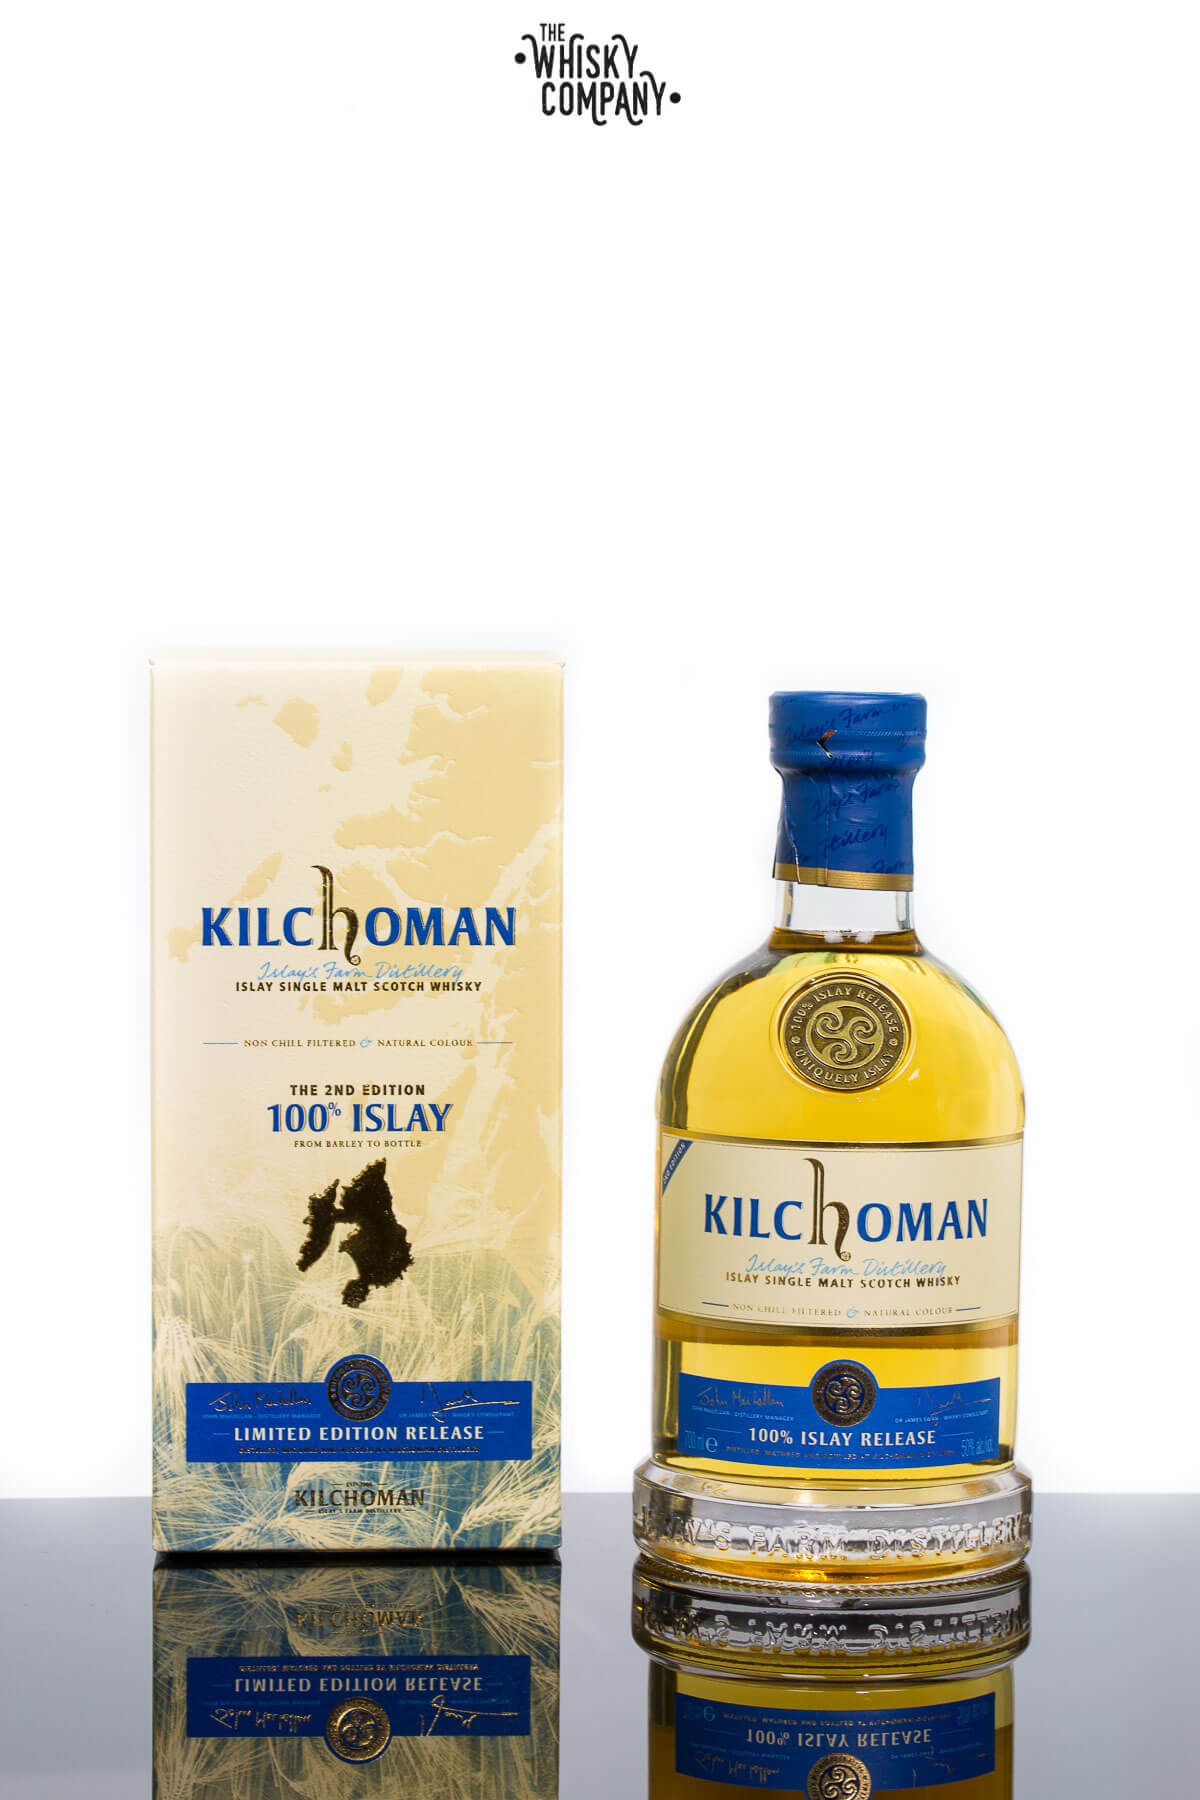 Kilchoman 100% Islay 2nd Edition Islay Single Malt Scotch Whisky